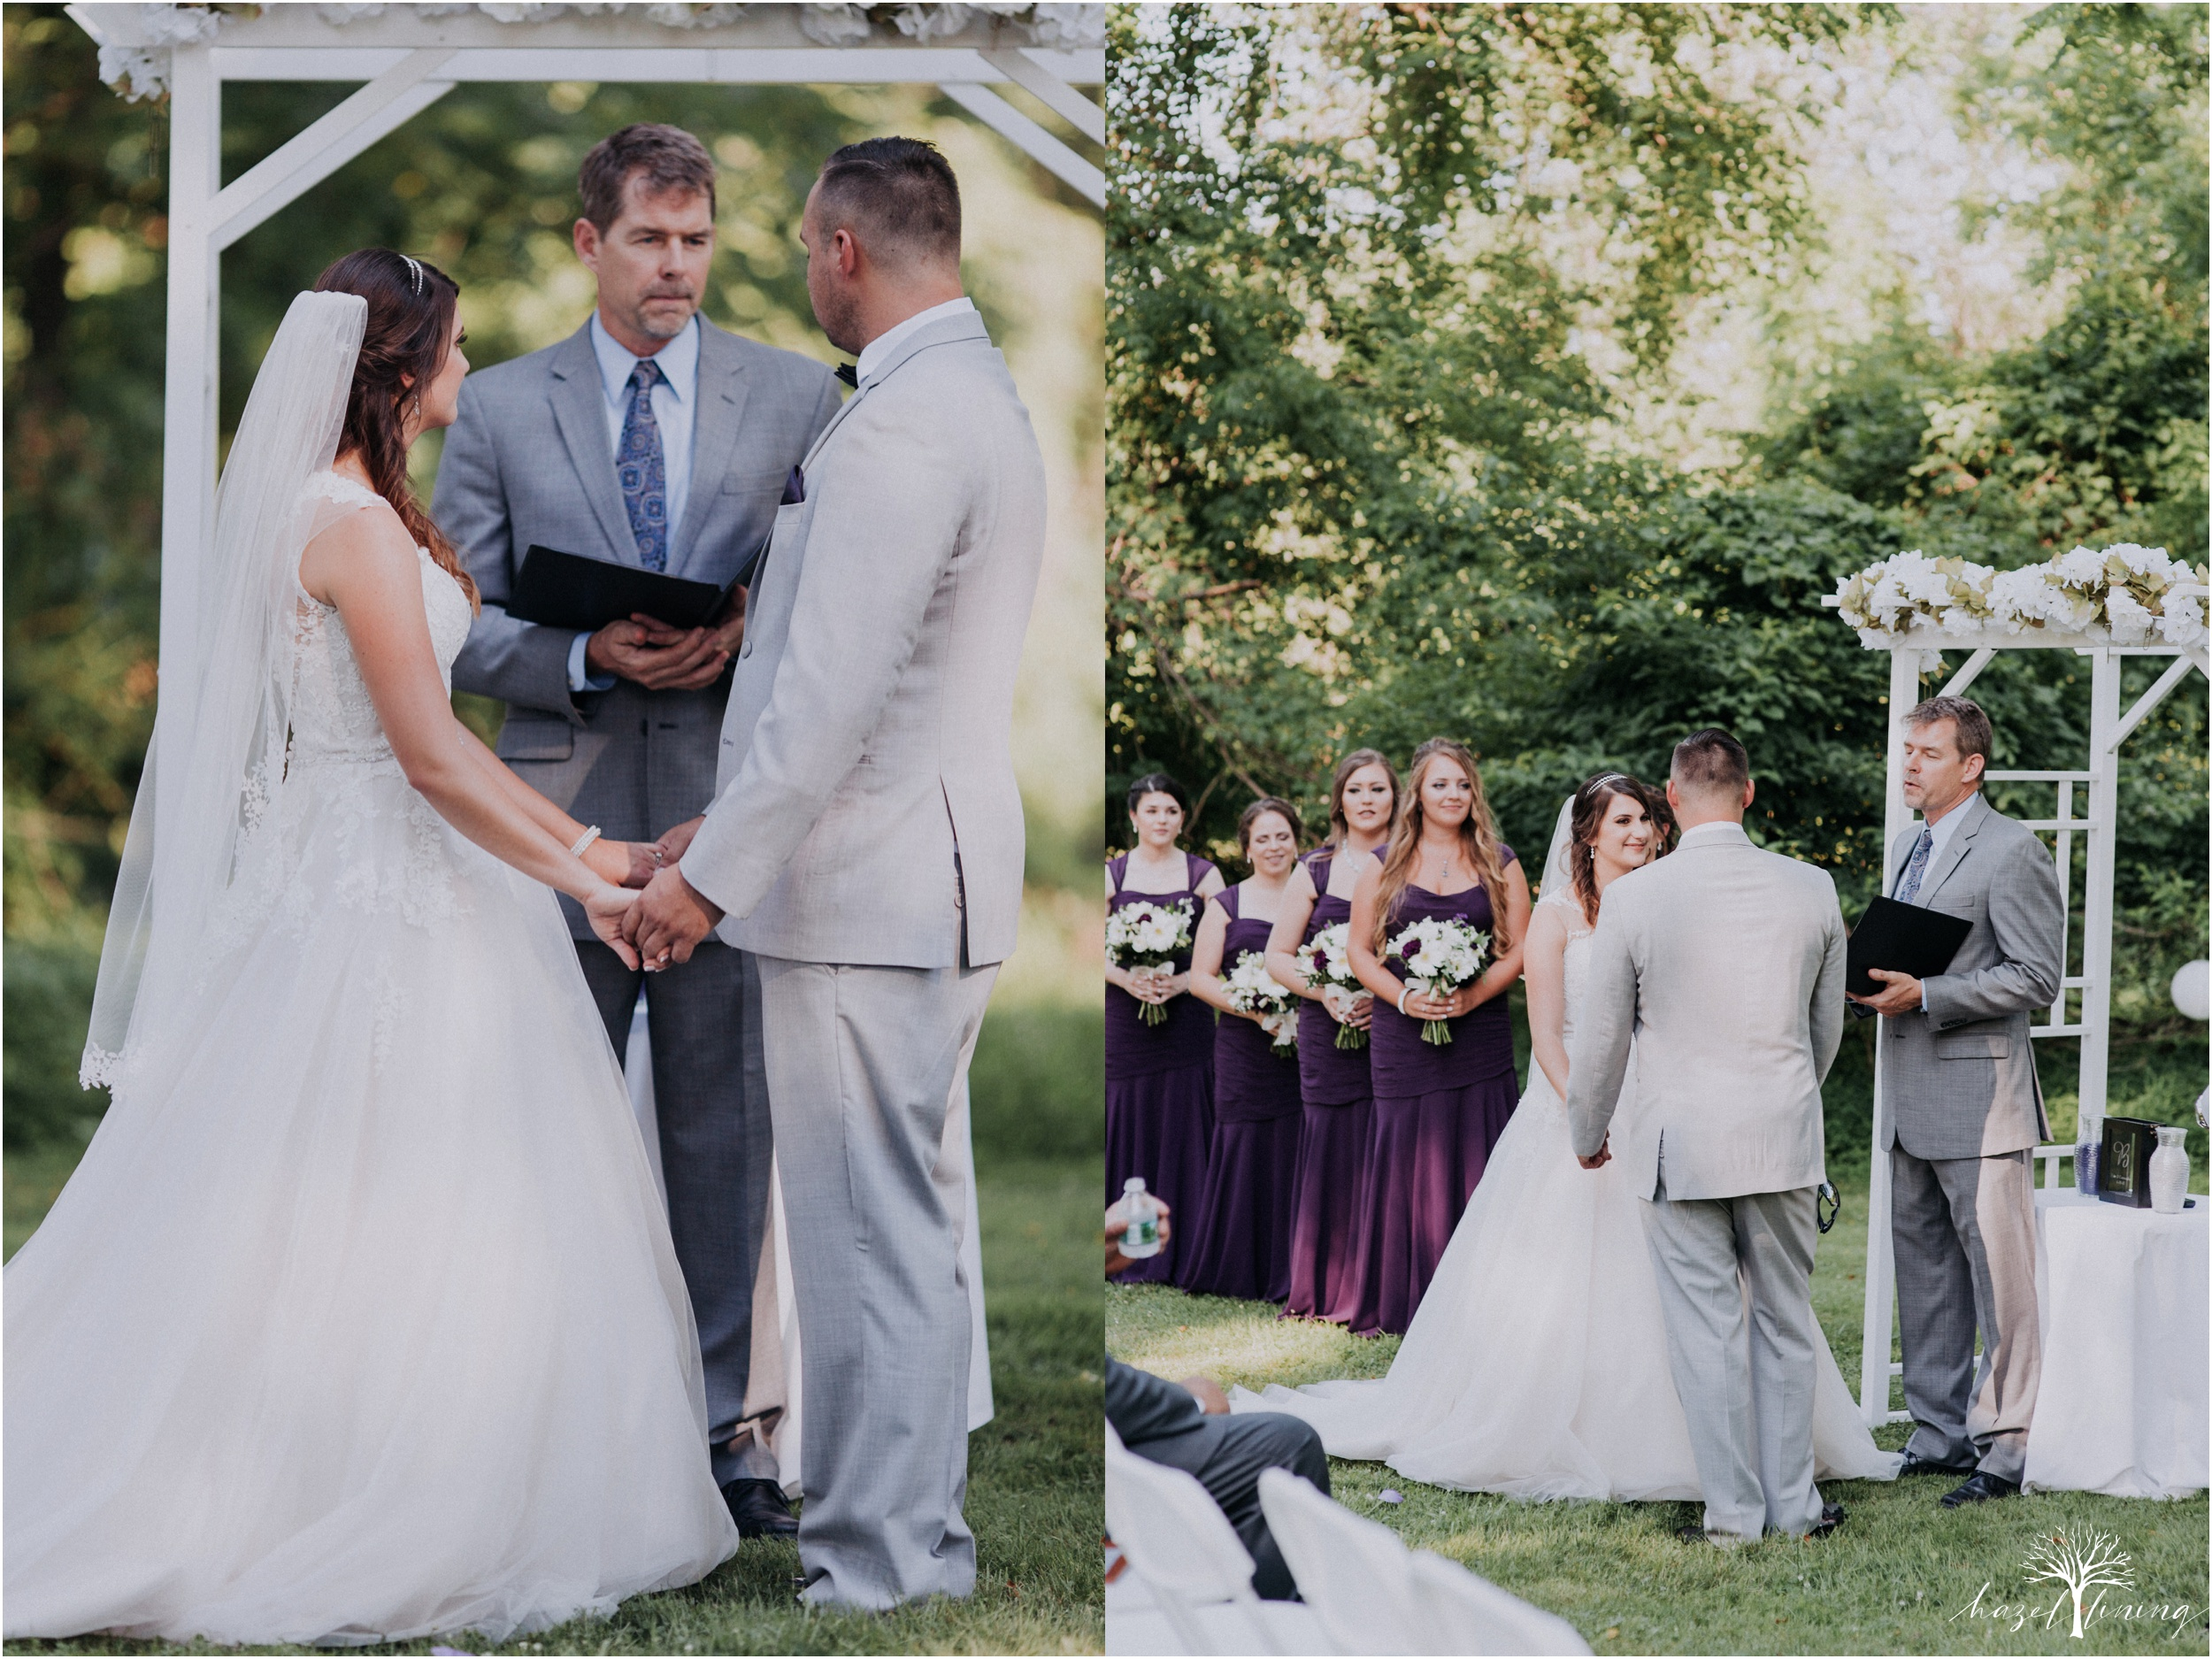 cassie-depinto-tyler-bodder-playwicki-farm-buck-hotel-featserville-trevose-pennsylvania-summer-outdoor-wedding-hazel-lining-travel-wedding-elopement-photography_0212.jpg